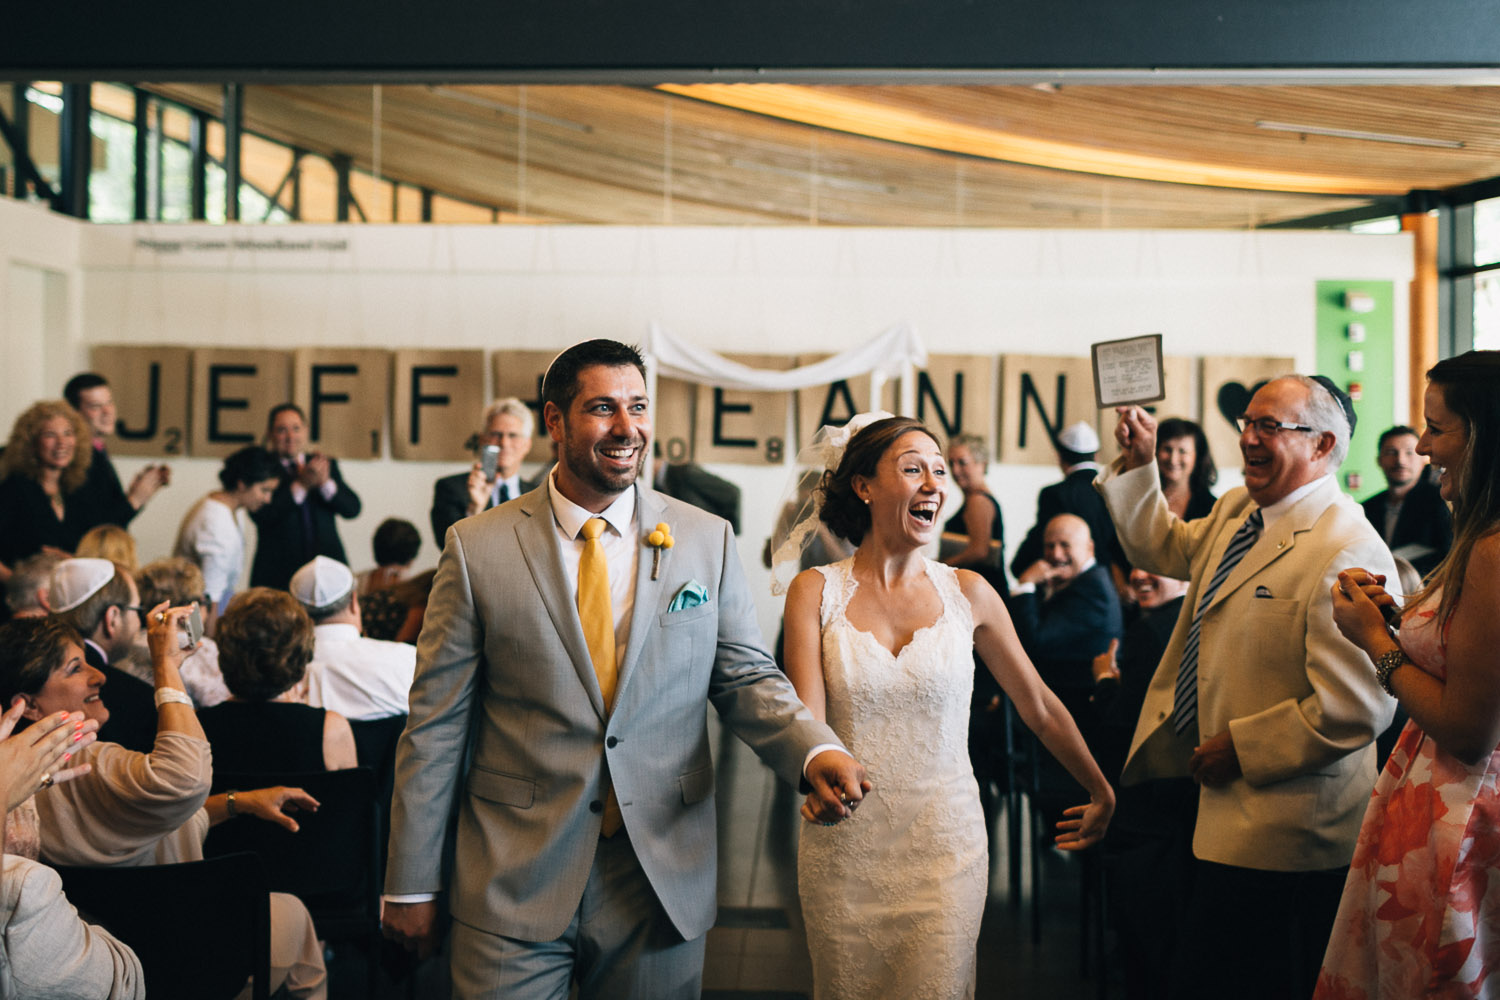 vancouver jewish wedding ceremony photographer noyo creative